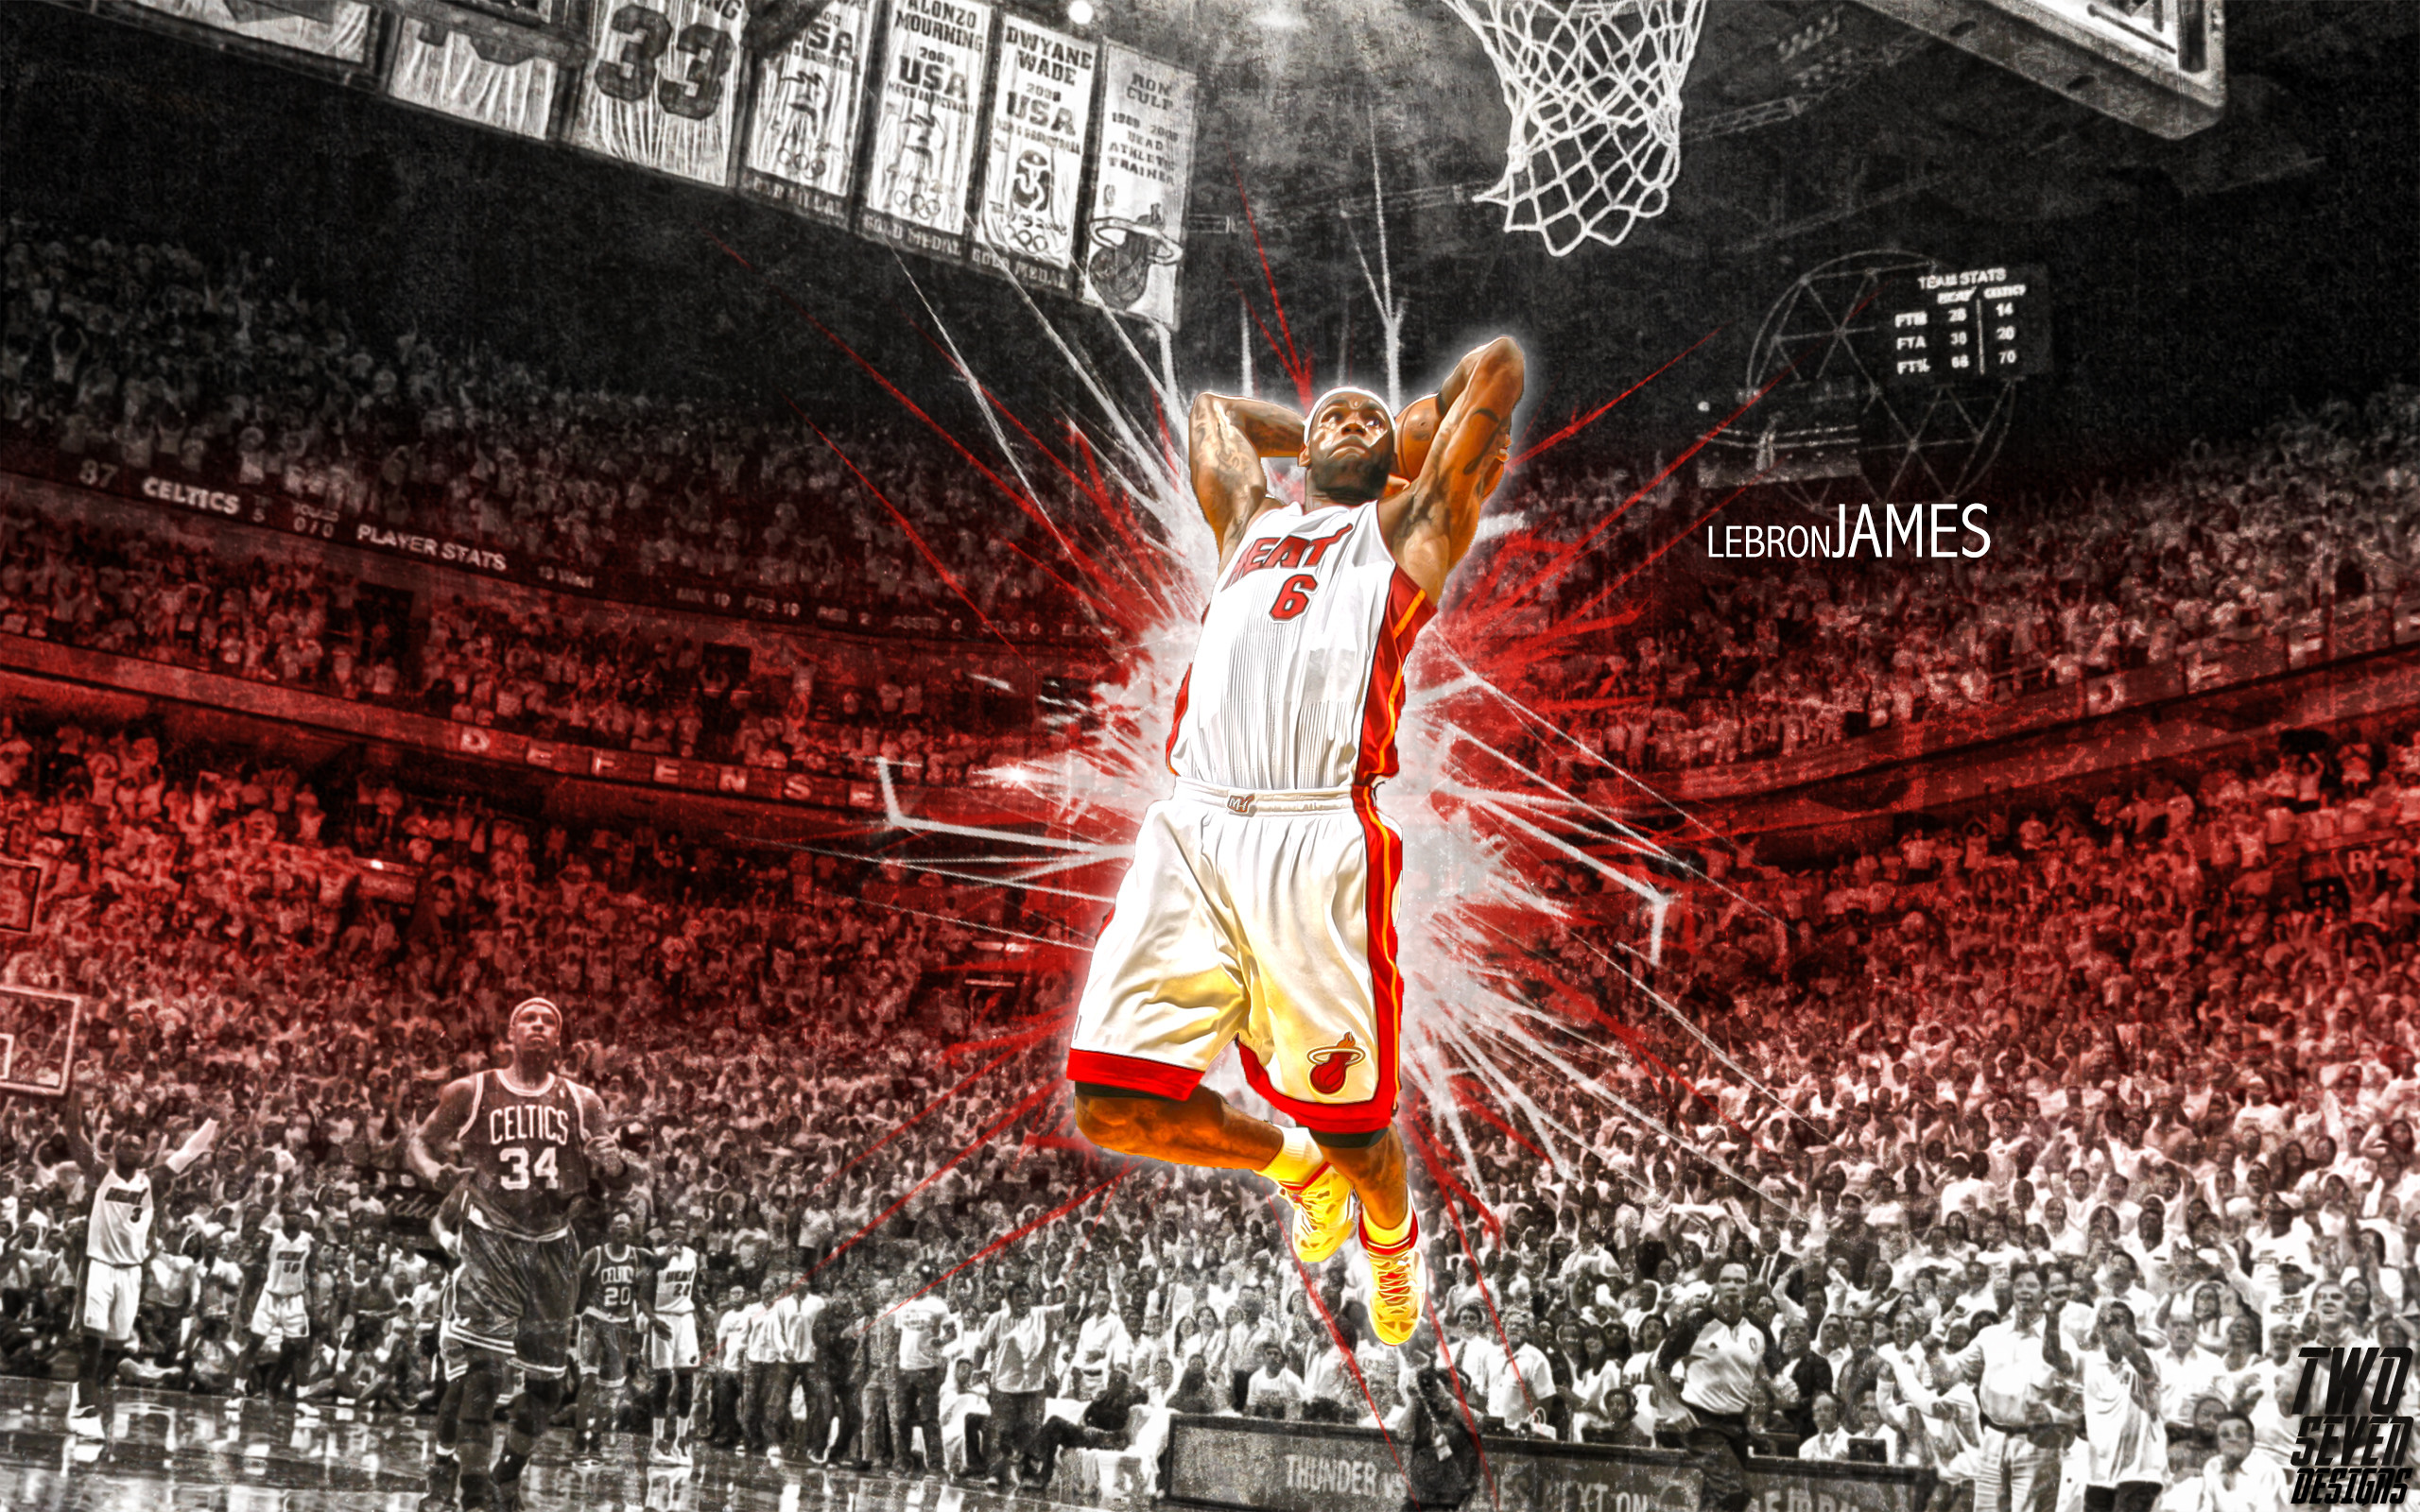 2560x1600 Lebron James Miami Heat Wallpaper For Desktop 71021